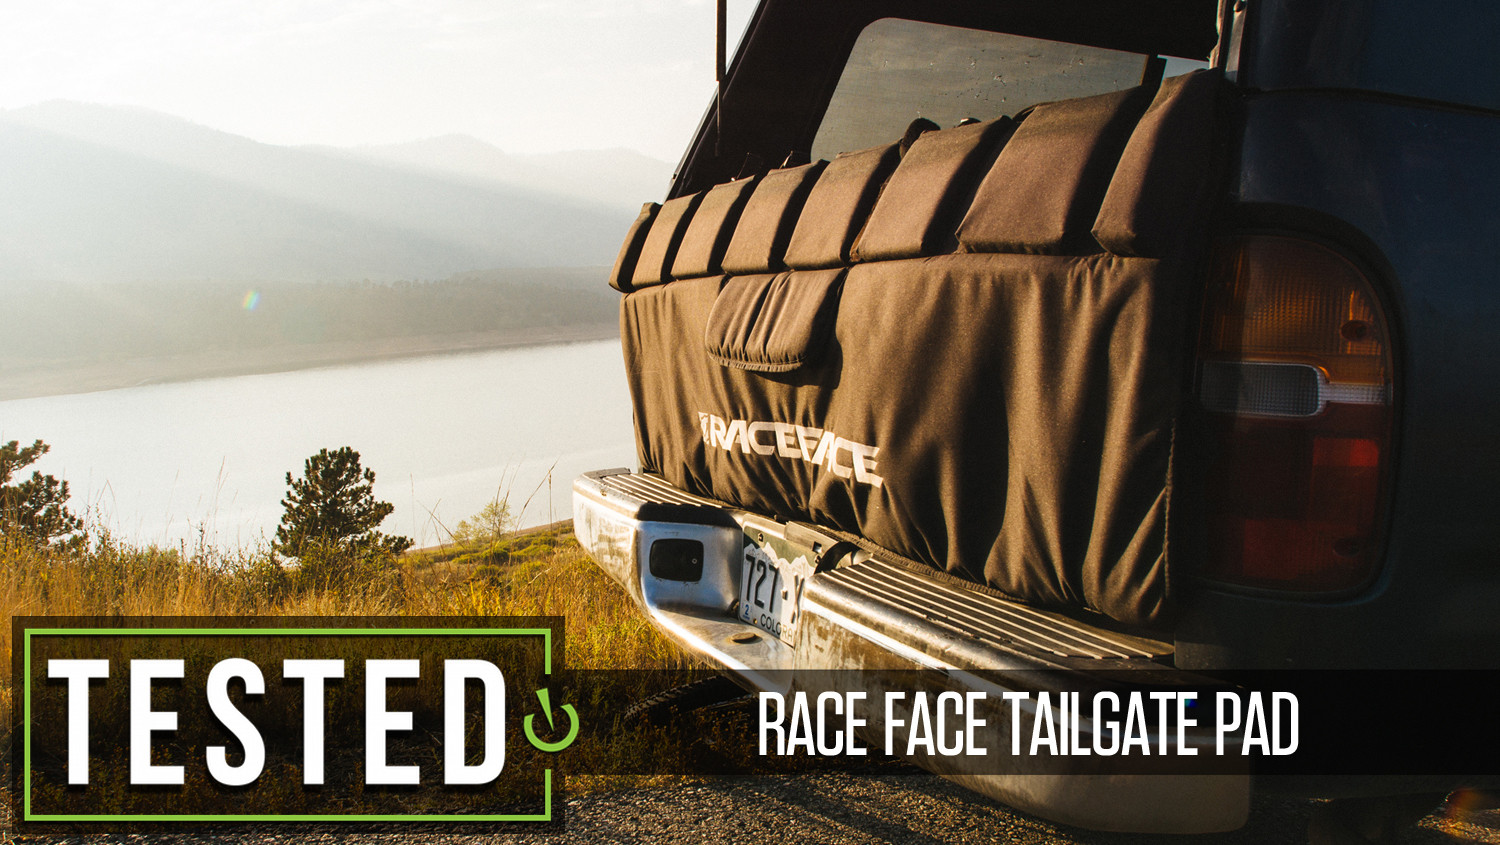 Tested Race Face Tailgate Pad & Race Face Tailgate Pad - Reviews Comparisons Specs - Mountain Bike ...